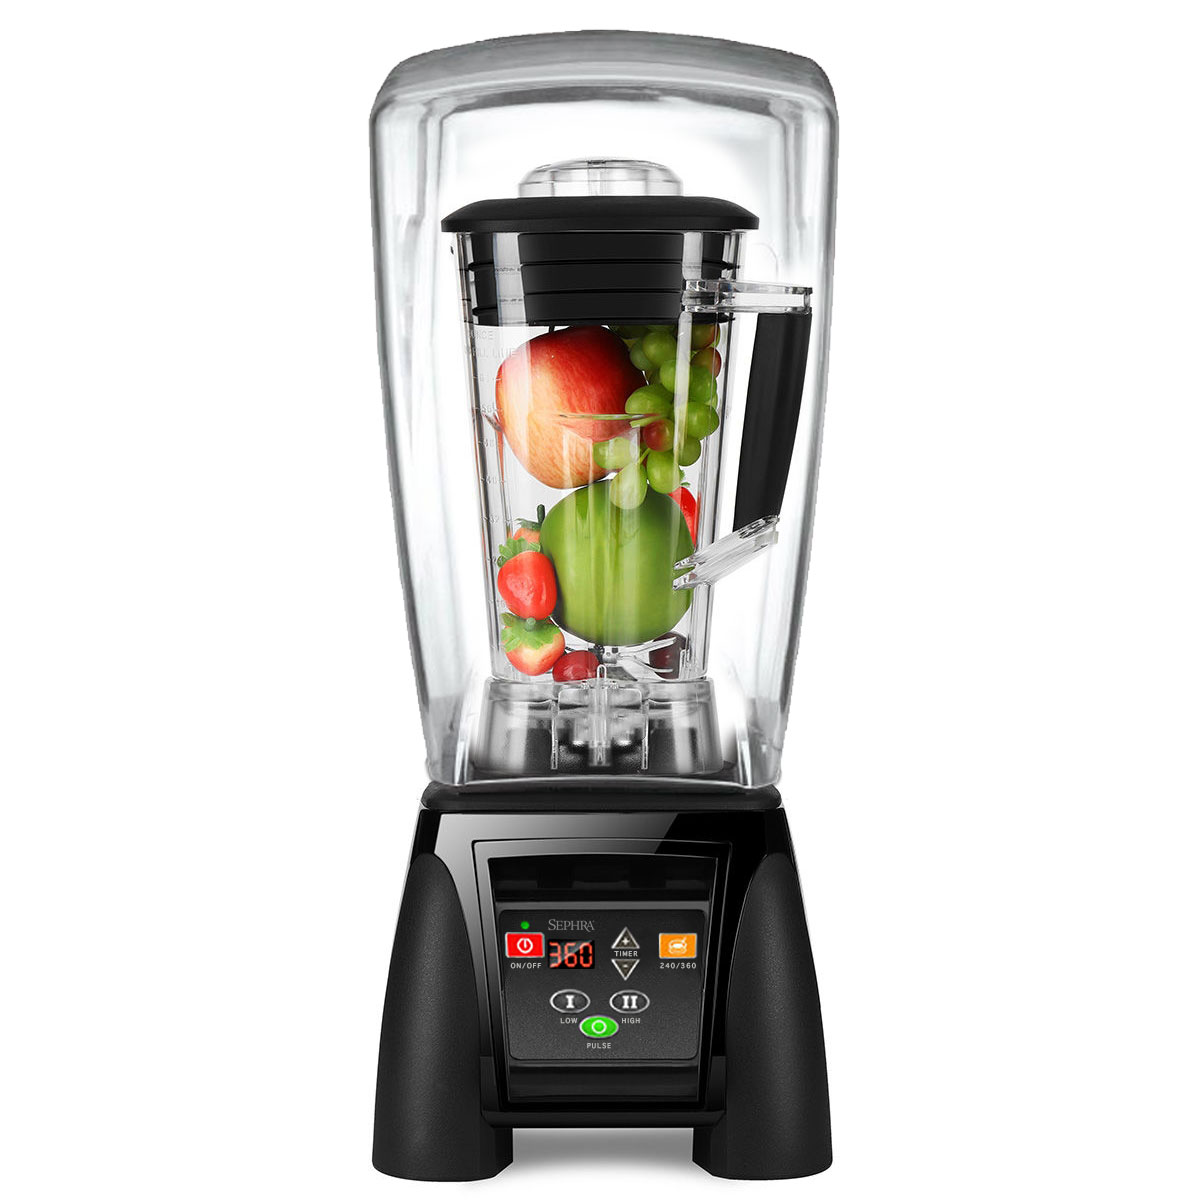 Sephra 1053-Z Commercial Food Blender